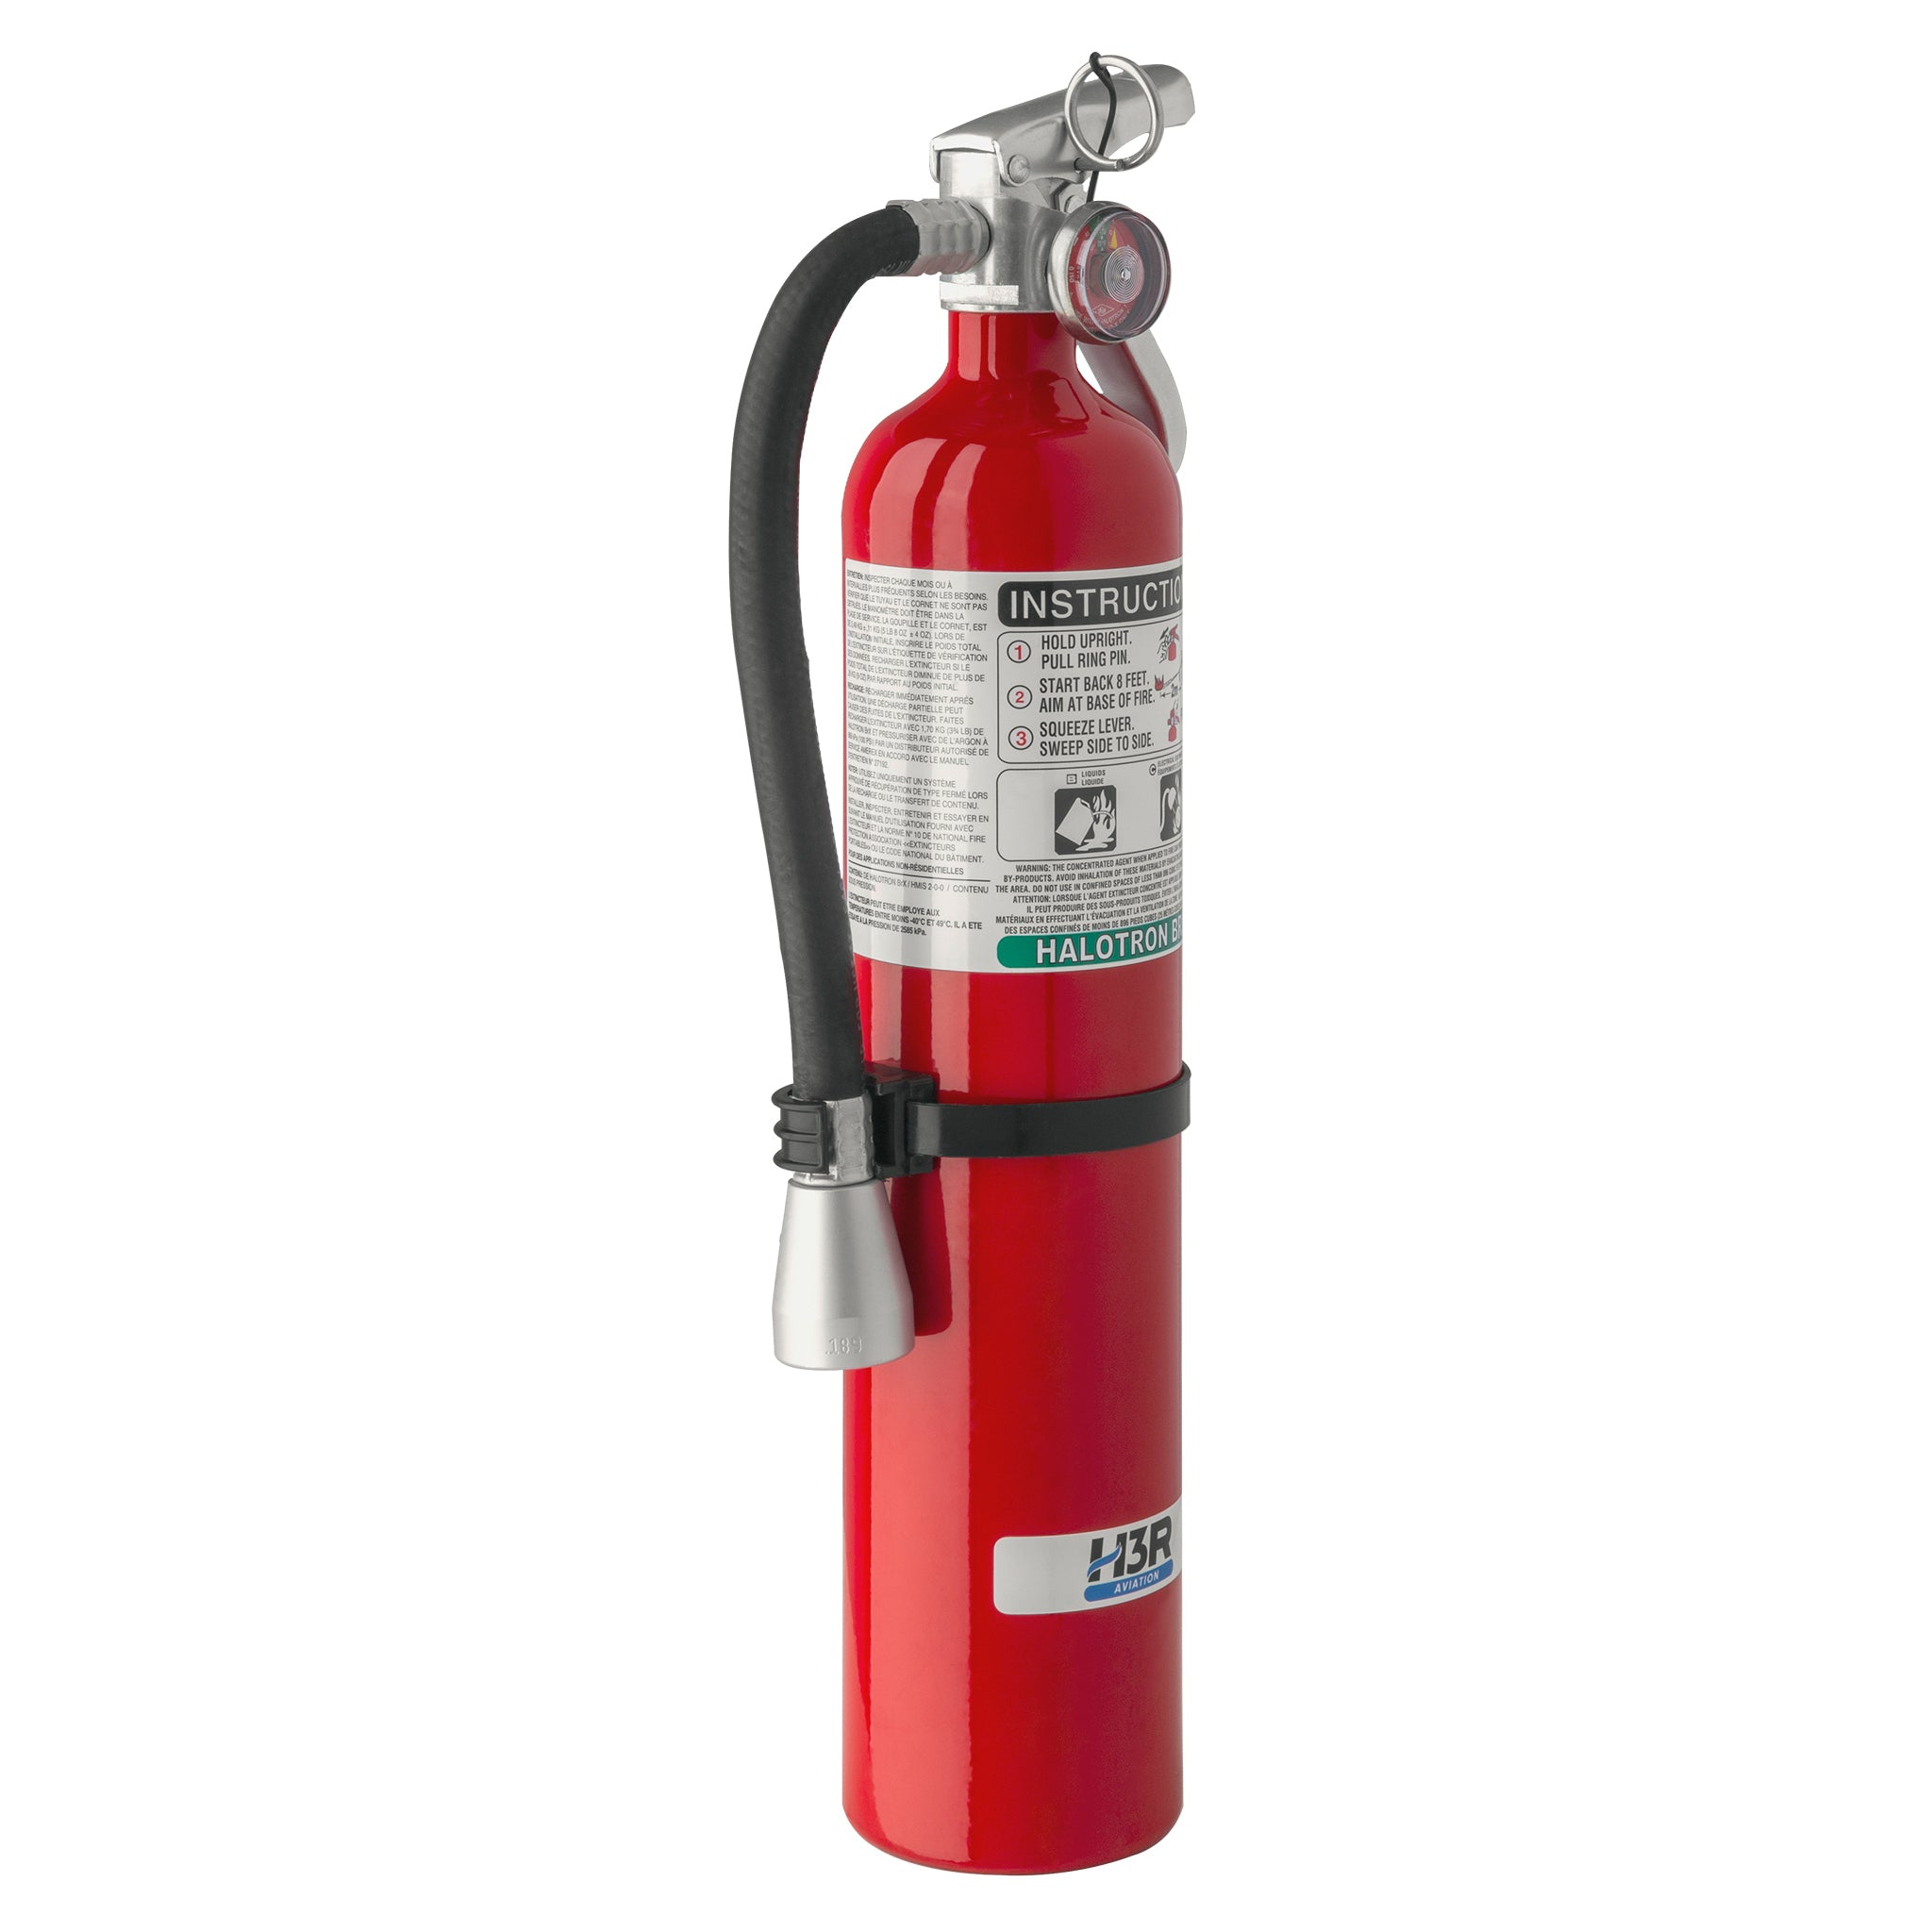 MODEL 349 – 3.75 lb. Halotron BrX Fire Extinguisher